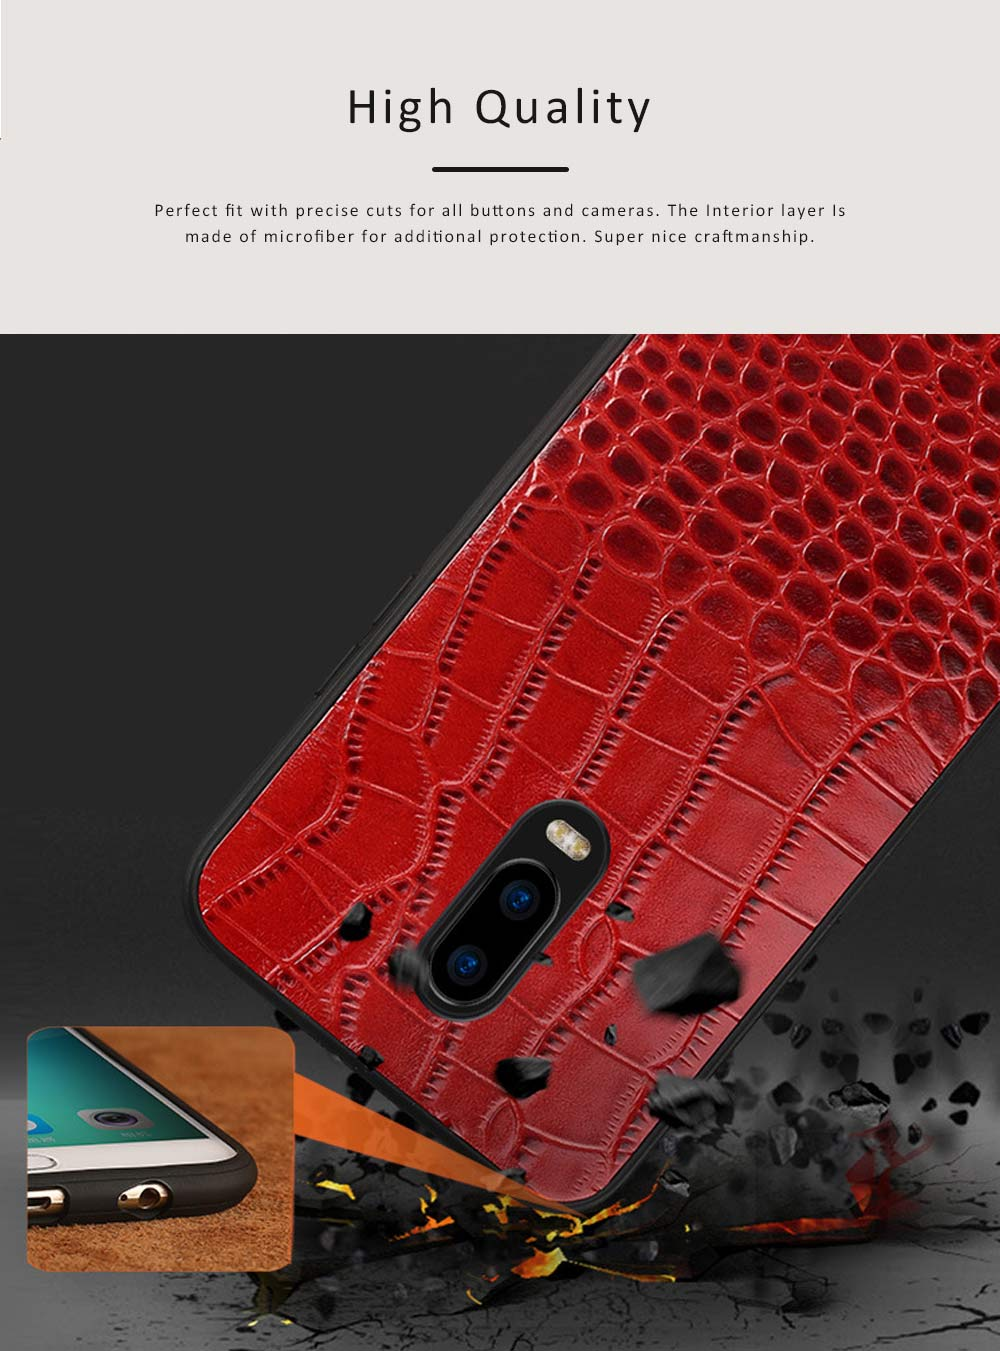 Phone Case Retro Genuine Leather 3D Alligator Skin Texture Case Fashion Phone Accessories for OPPOR Series 4